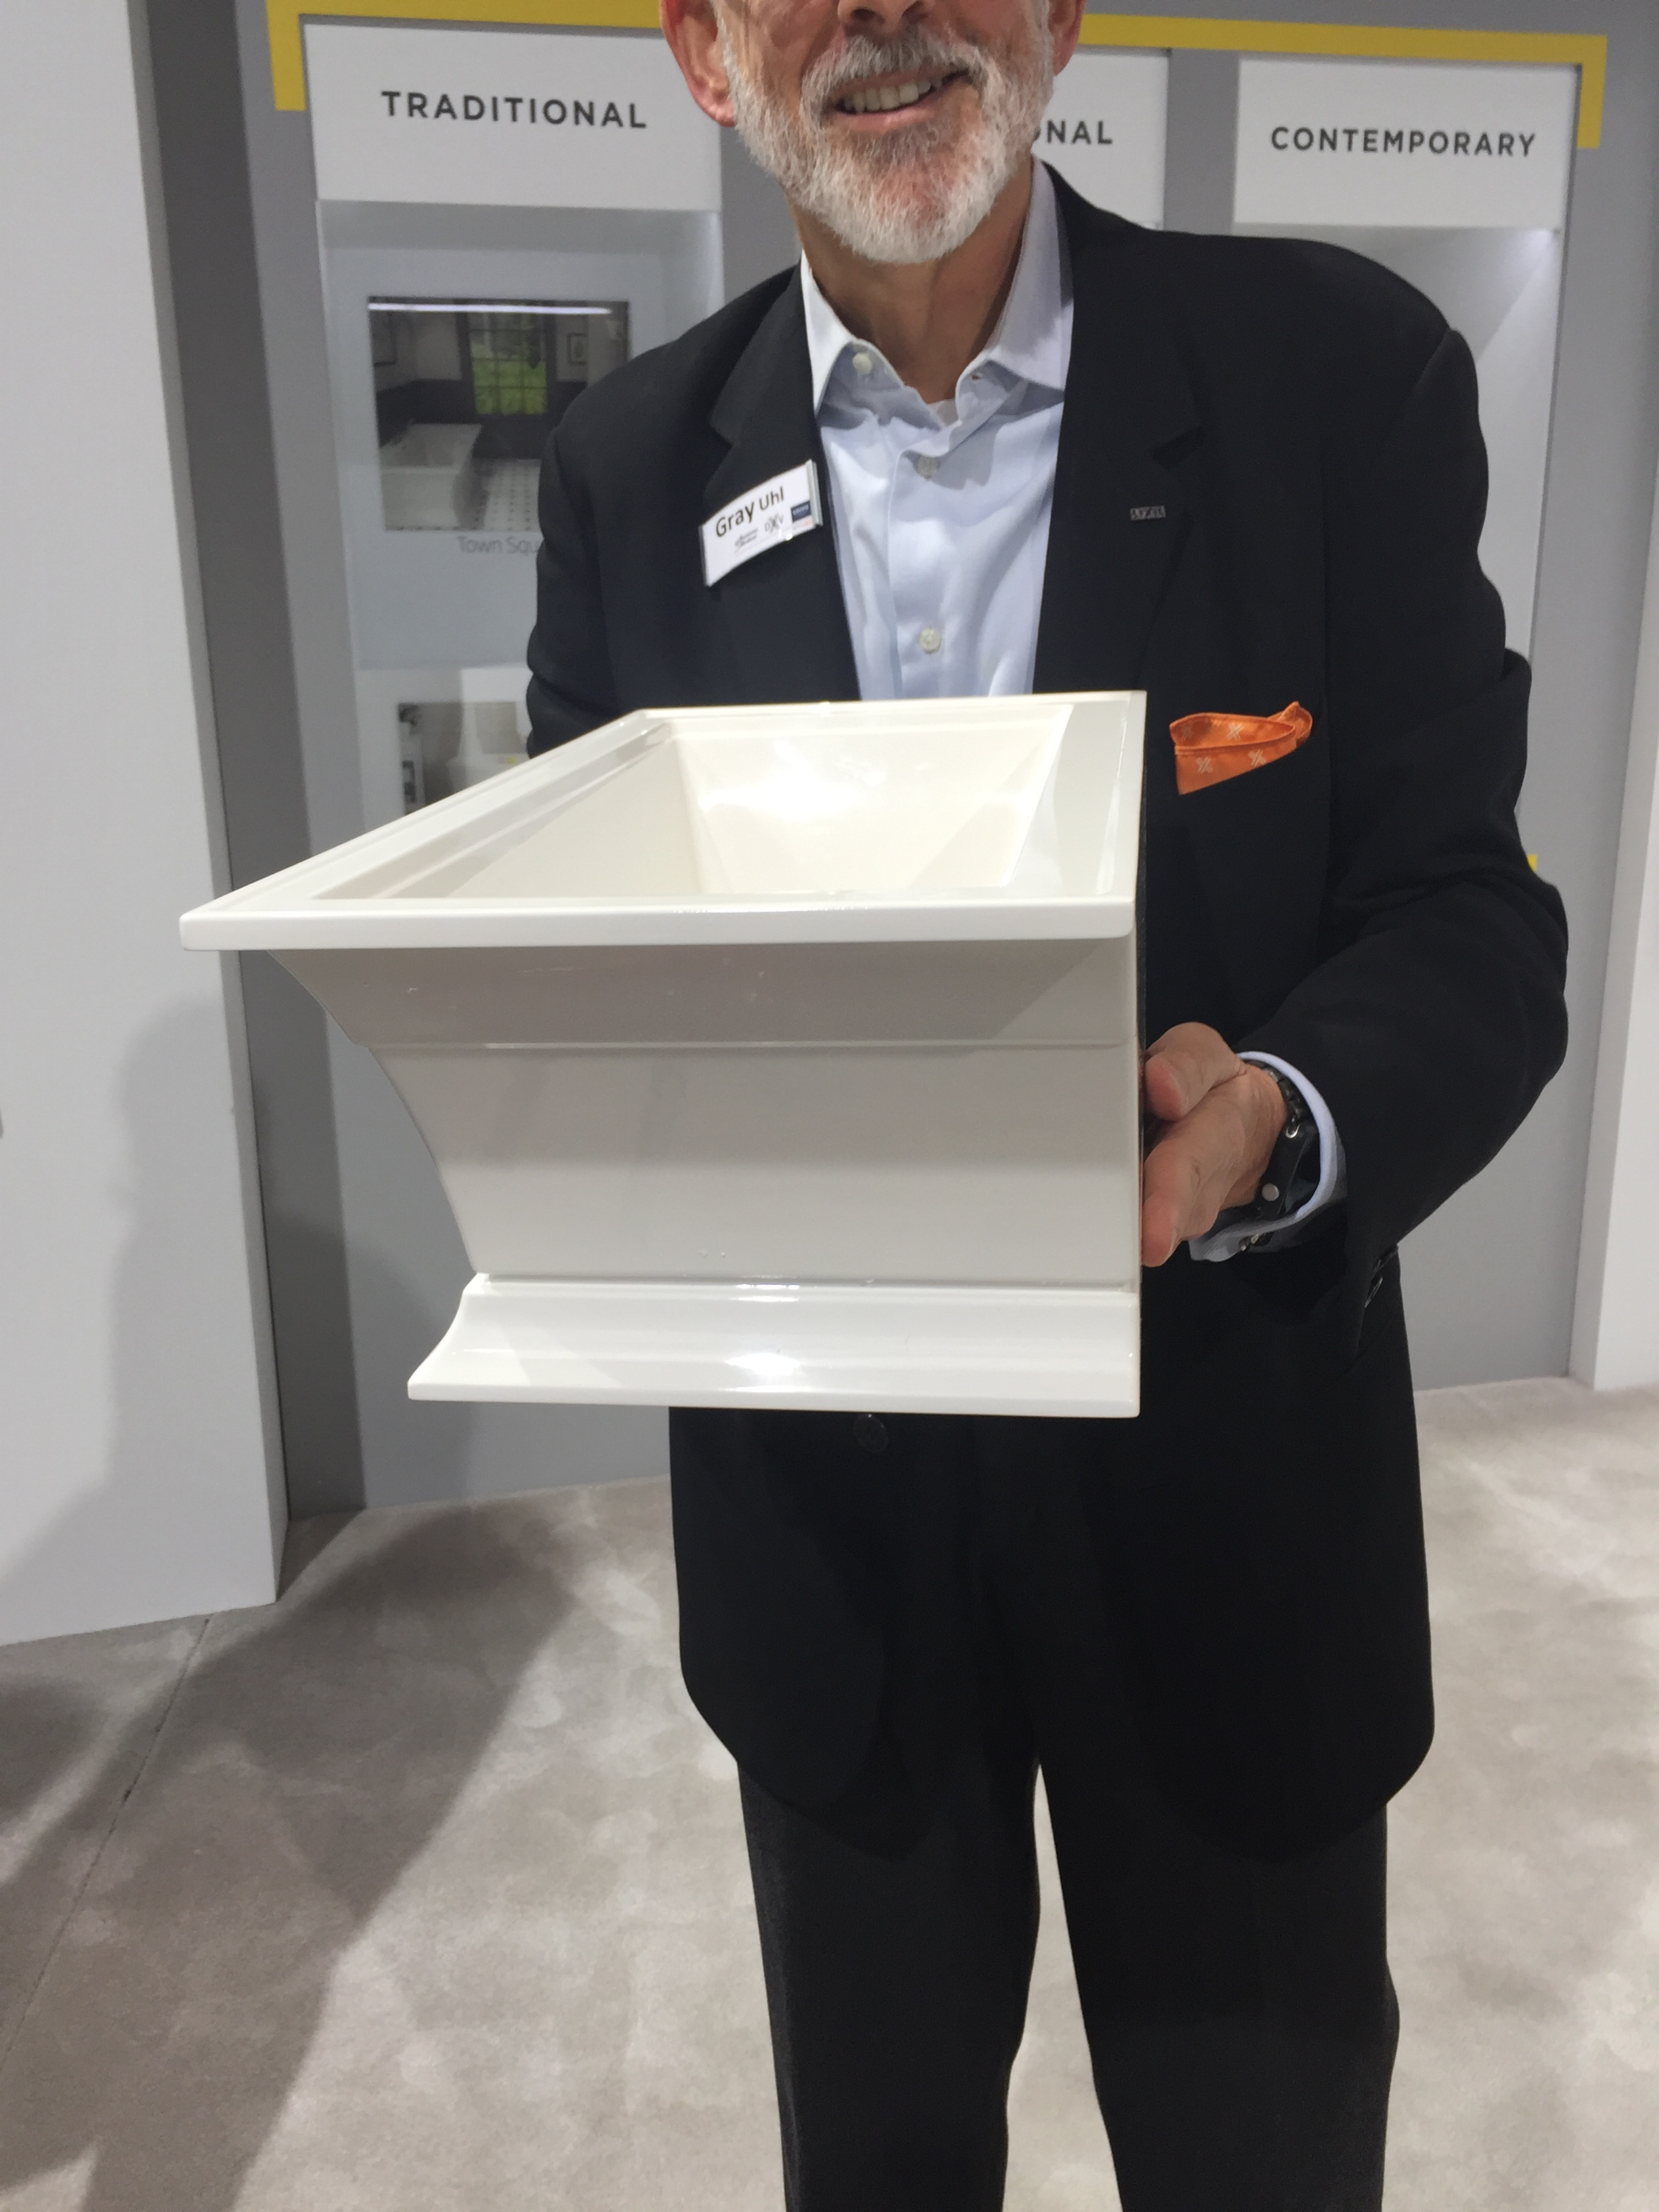 Found this great mock up of a free standing tub that snugs up to a wall last year - KBIS, Kitchen and Bath Industry Show